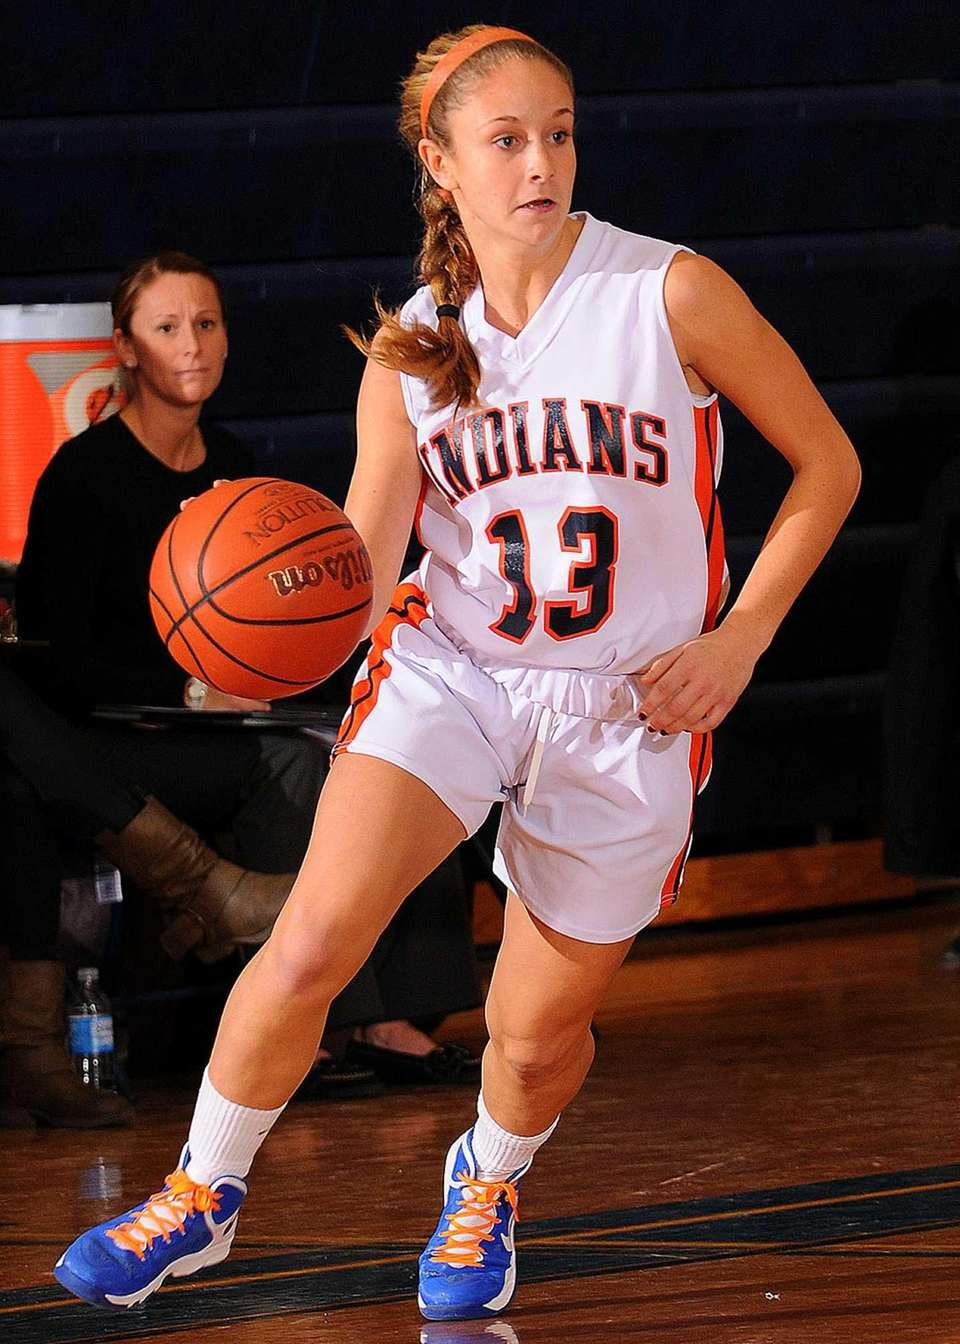 Manhasset's Maddie Molinari looks to make a pass